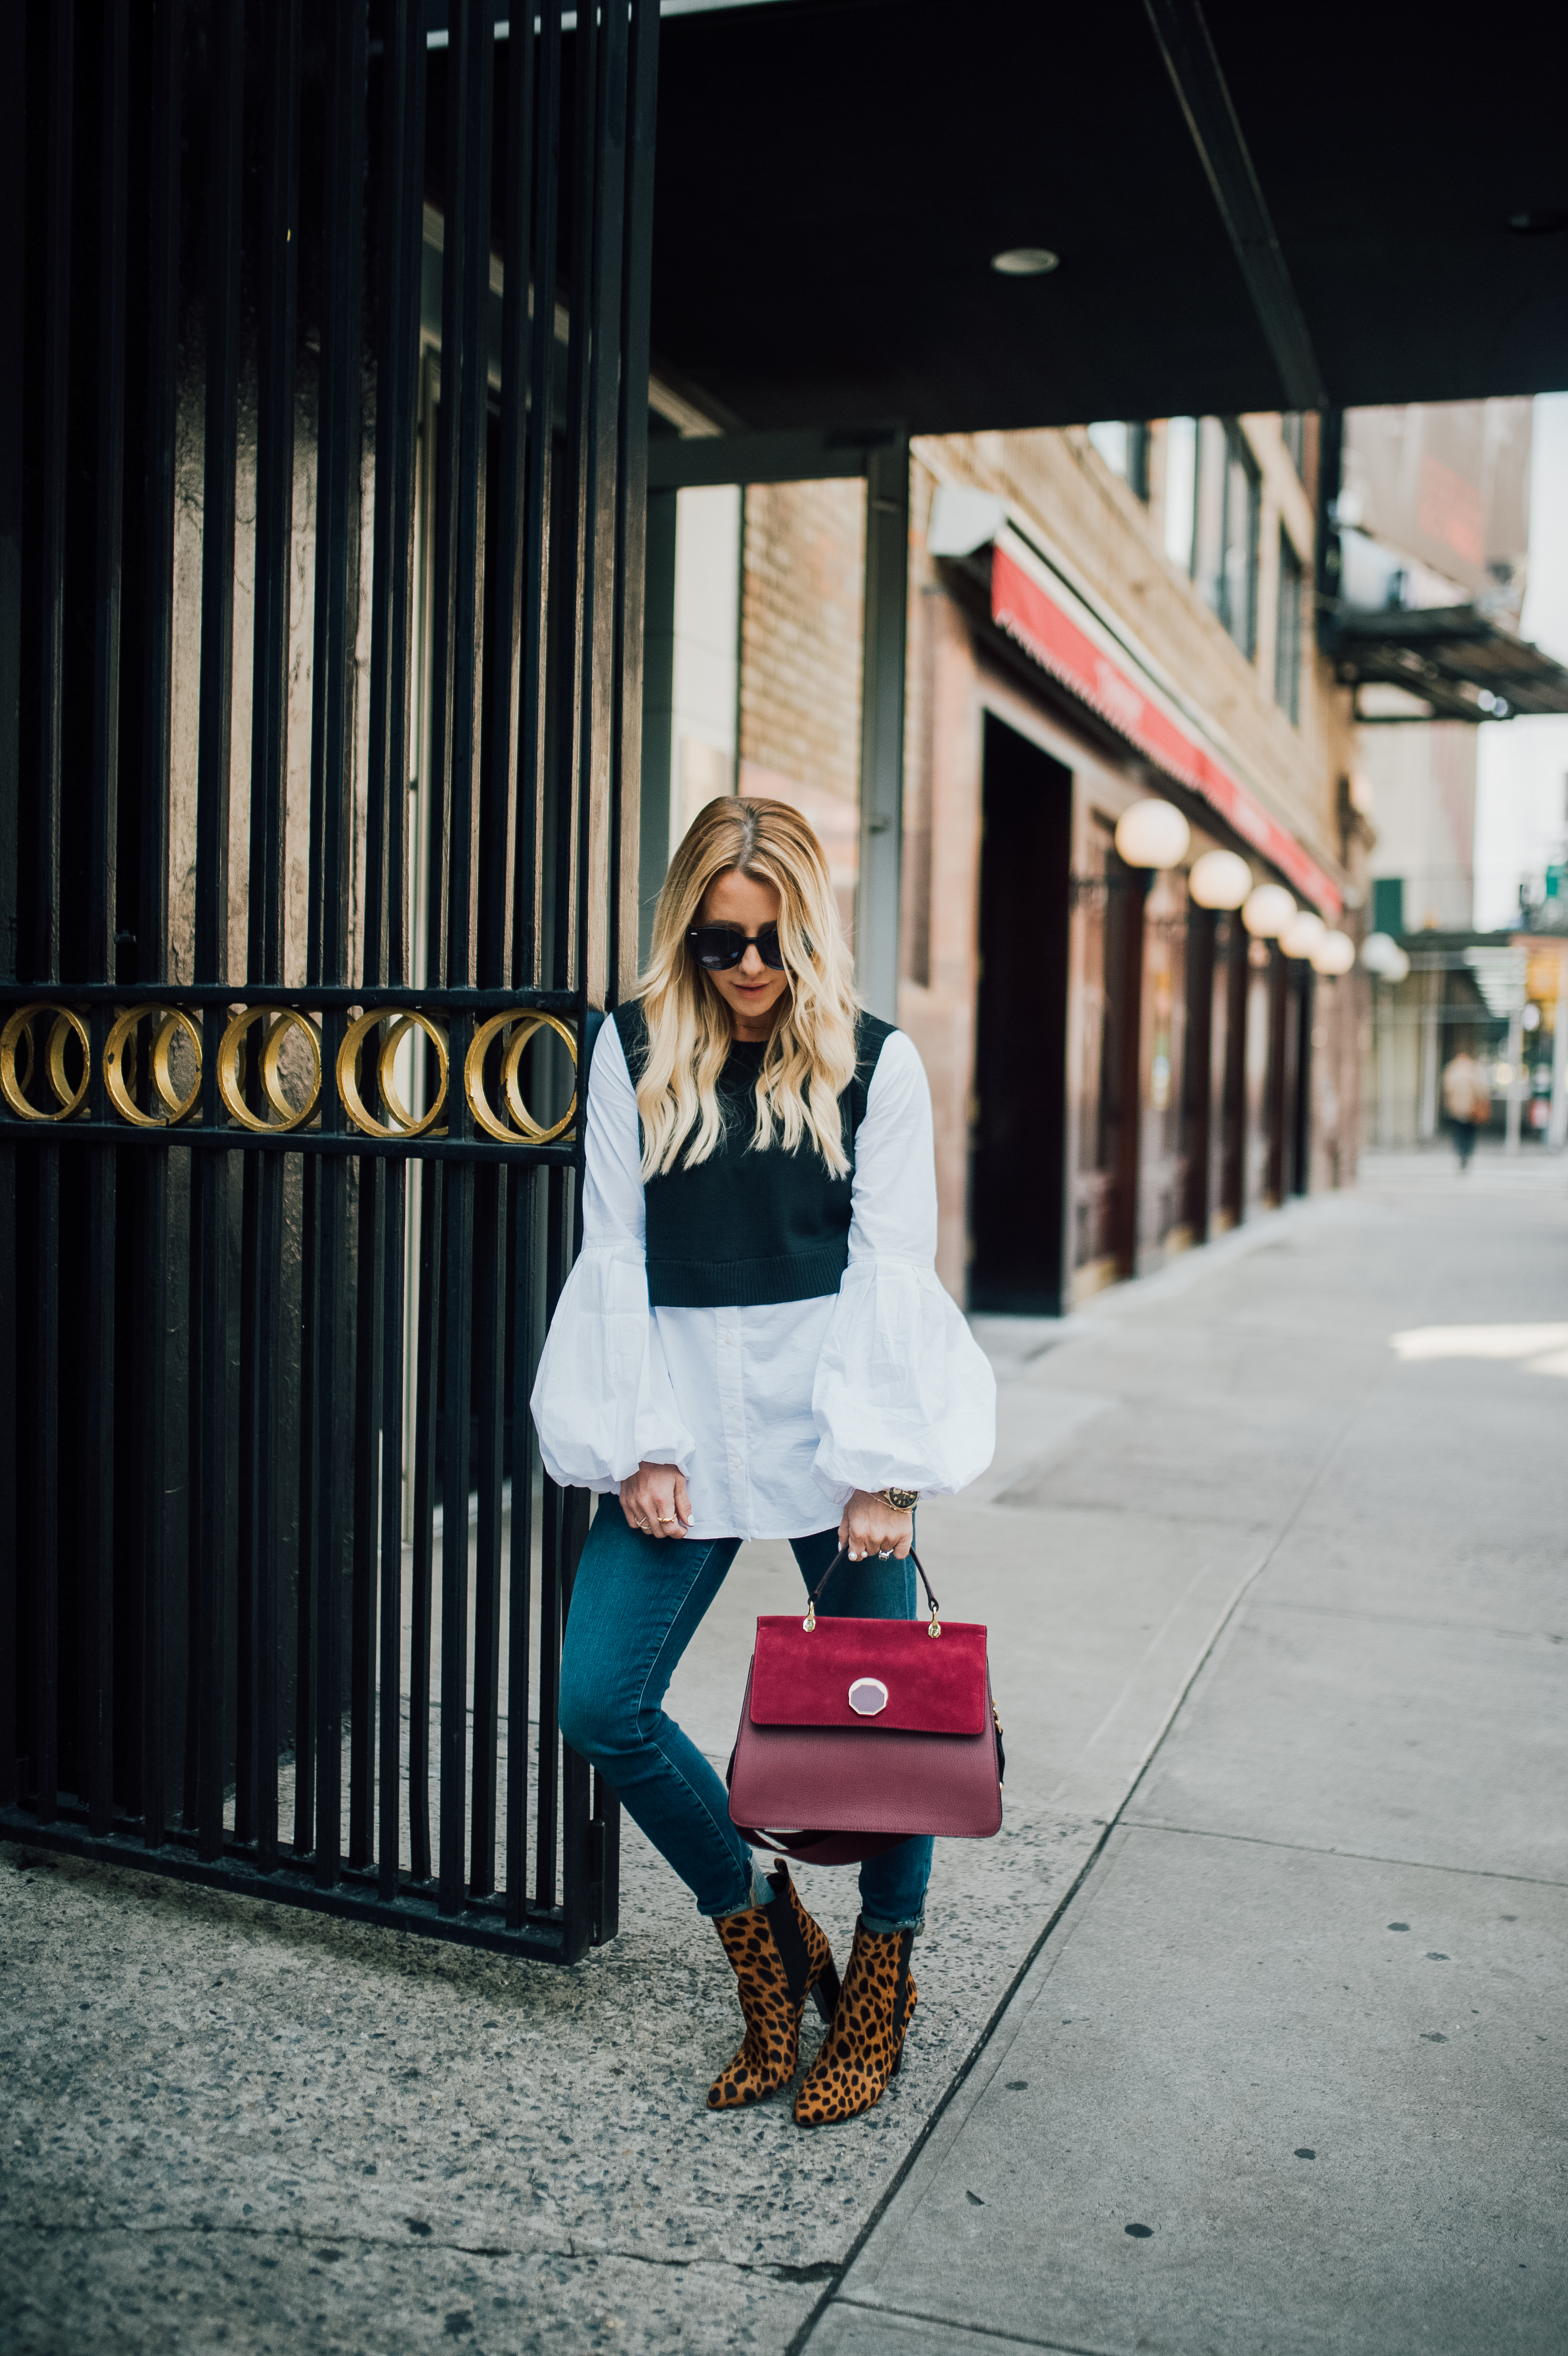 Fall Sweater - On Sale! by San Francisco fashion blogger For the Love ... 1bcec6f5e